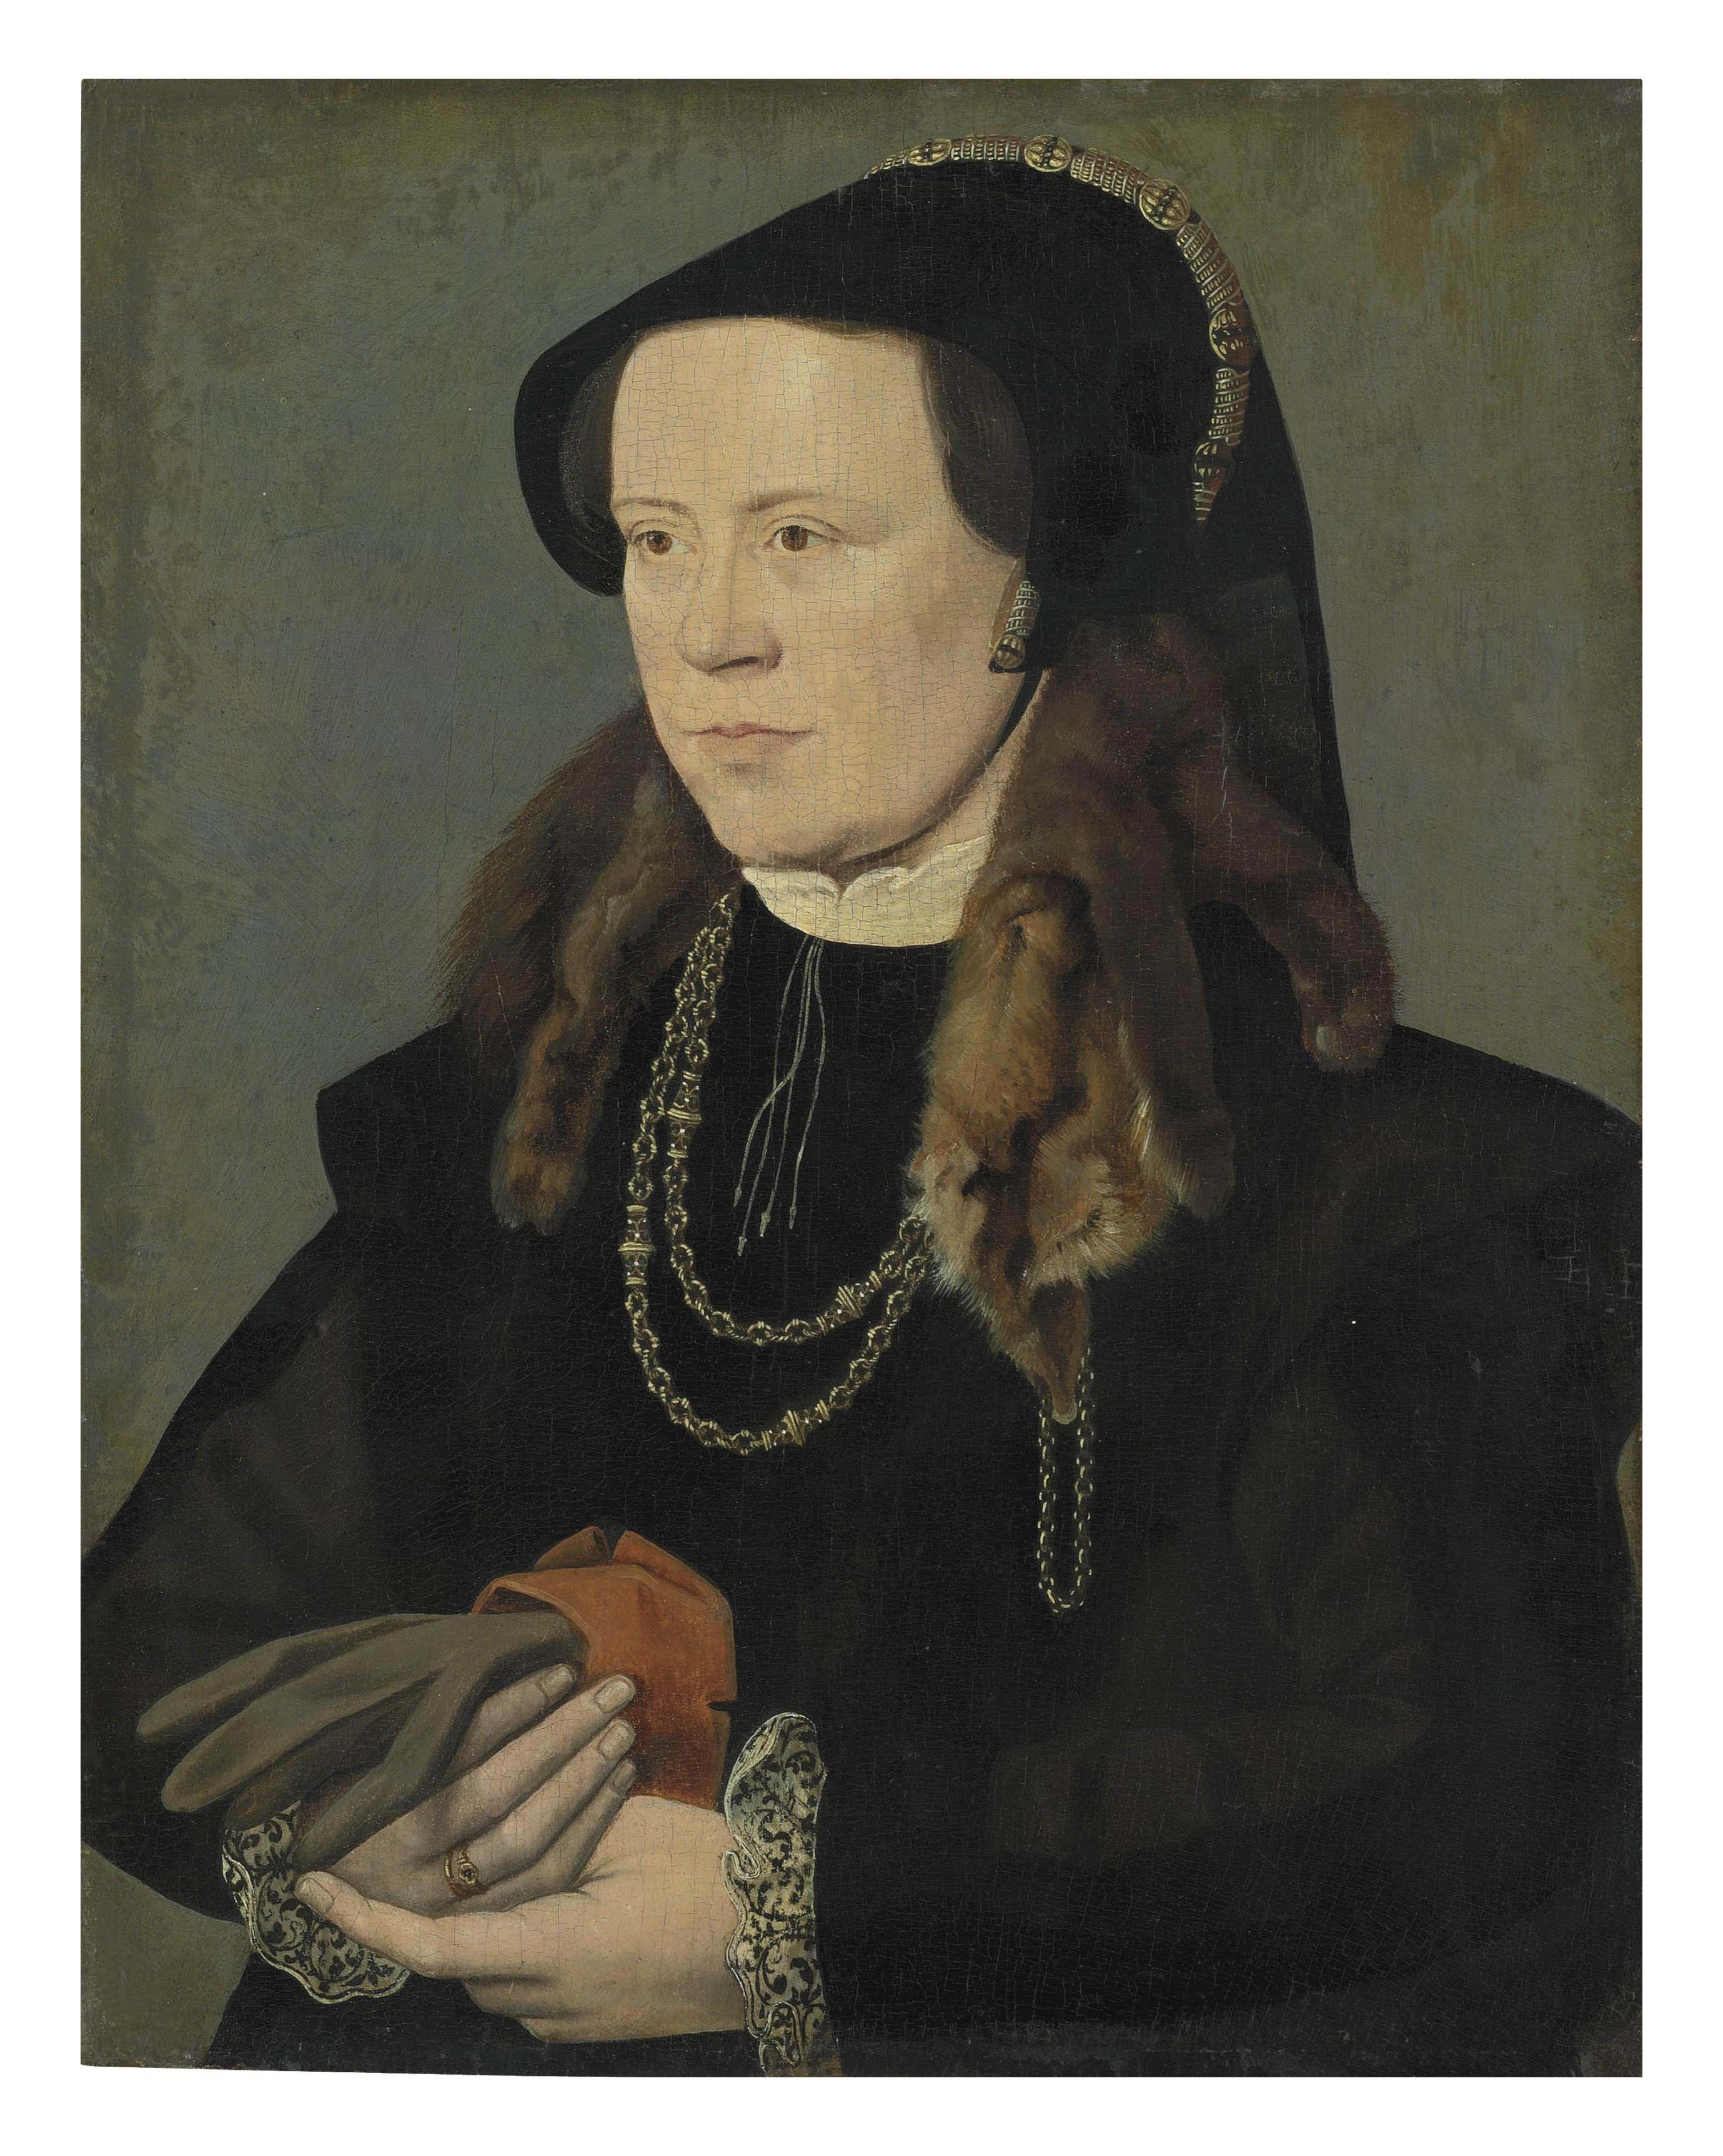 Portrait of a lady, half-length, in a black bodice with sleeves and black embroidered cuffs, and a black headdress, with an enameled chain and a fur tippet around her neck, holding a pair of gloves in her right hand